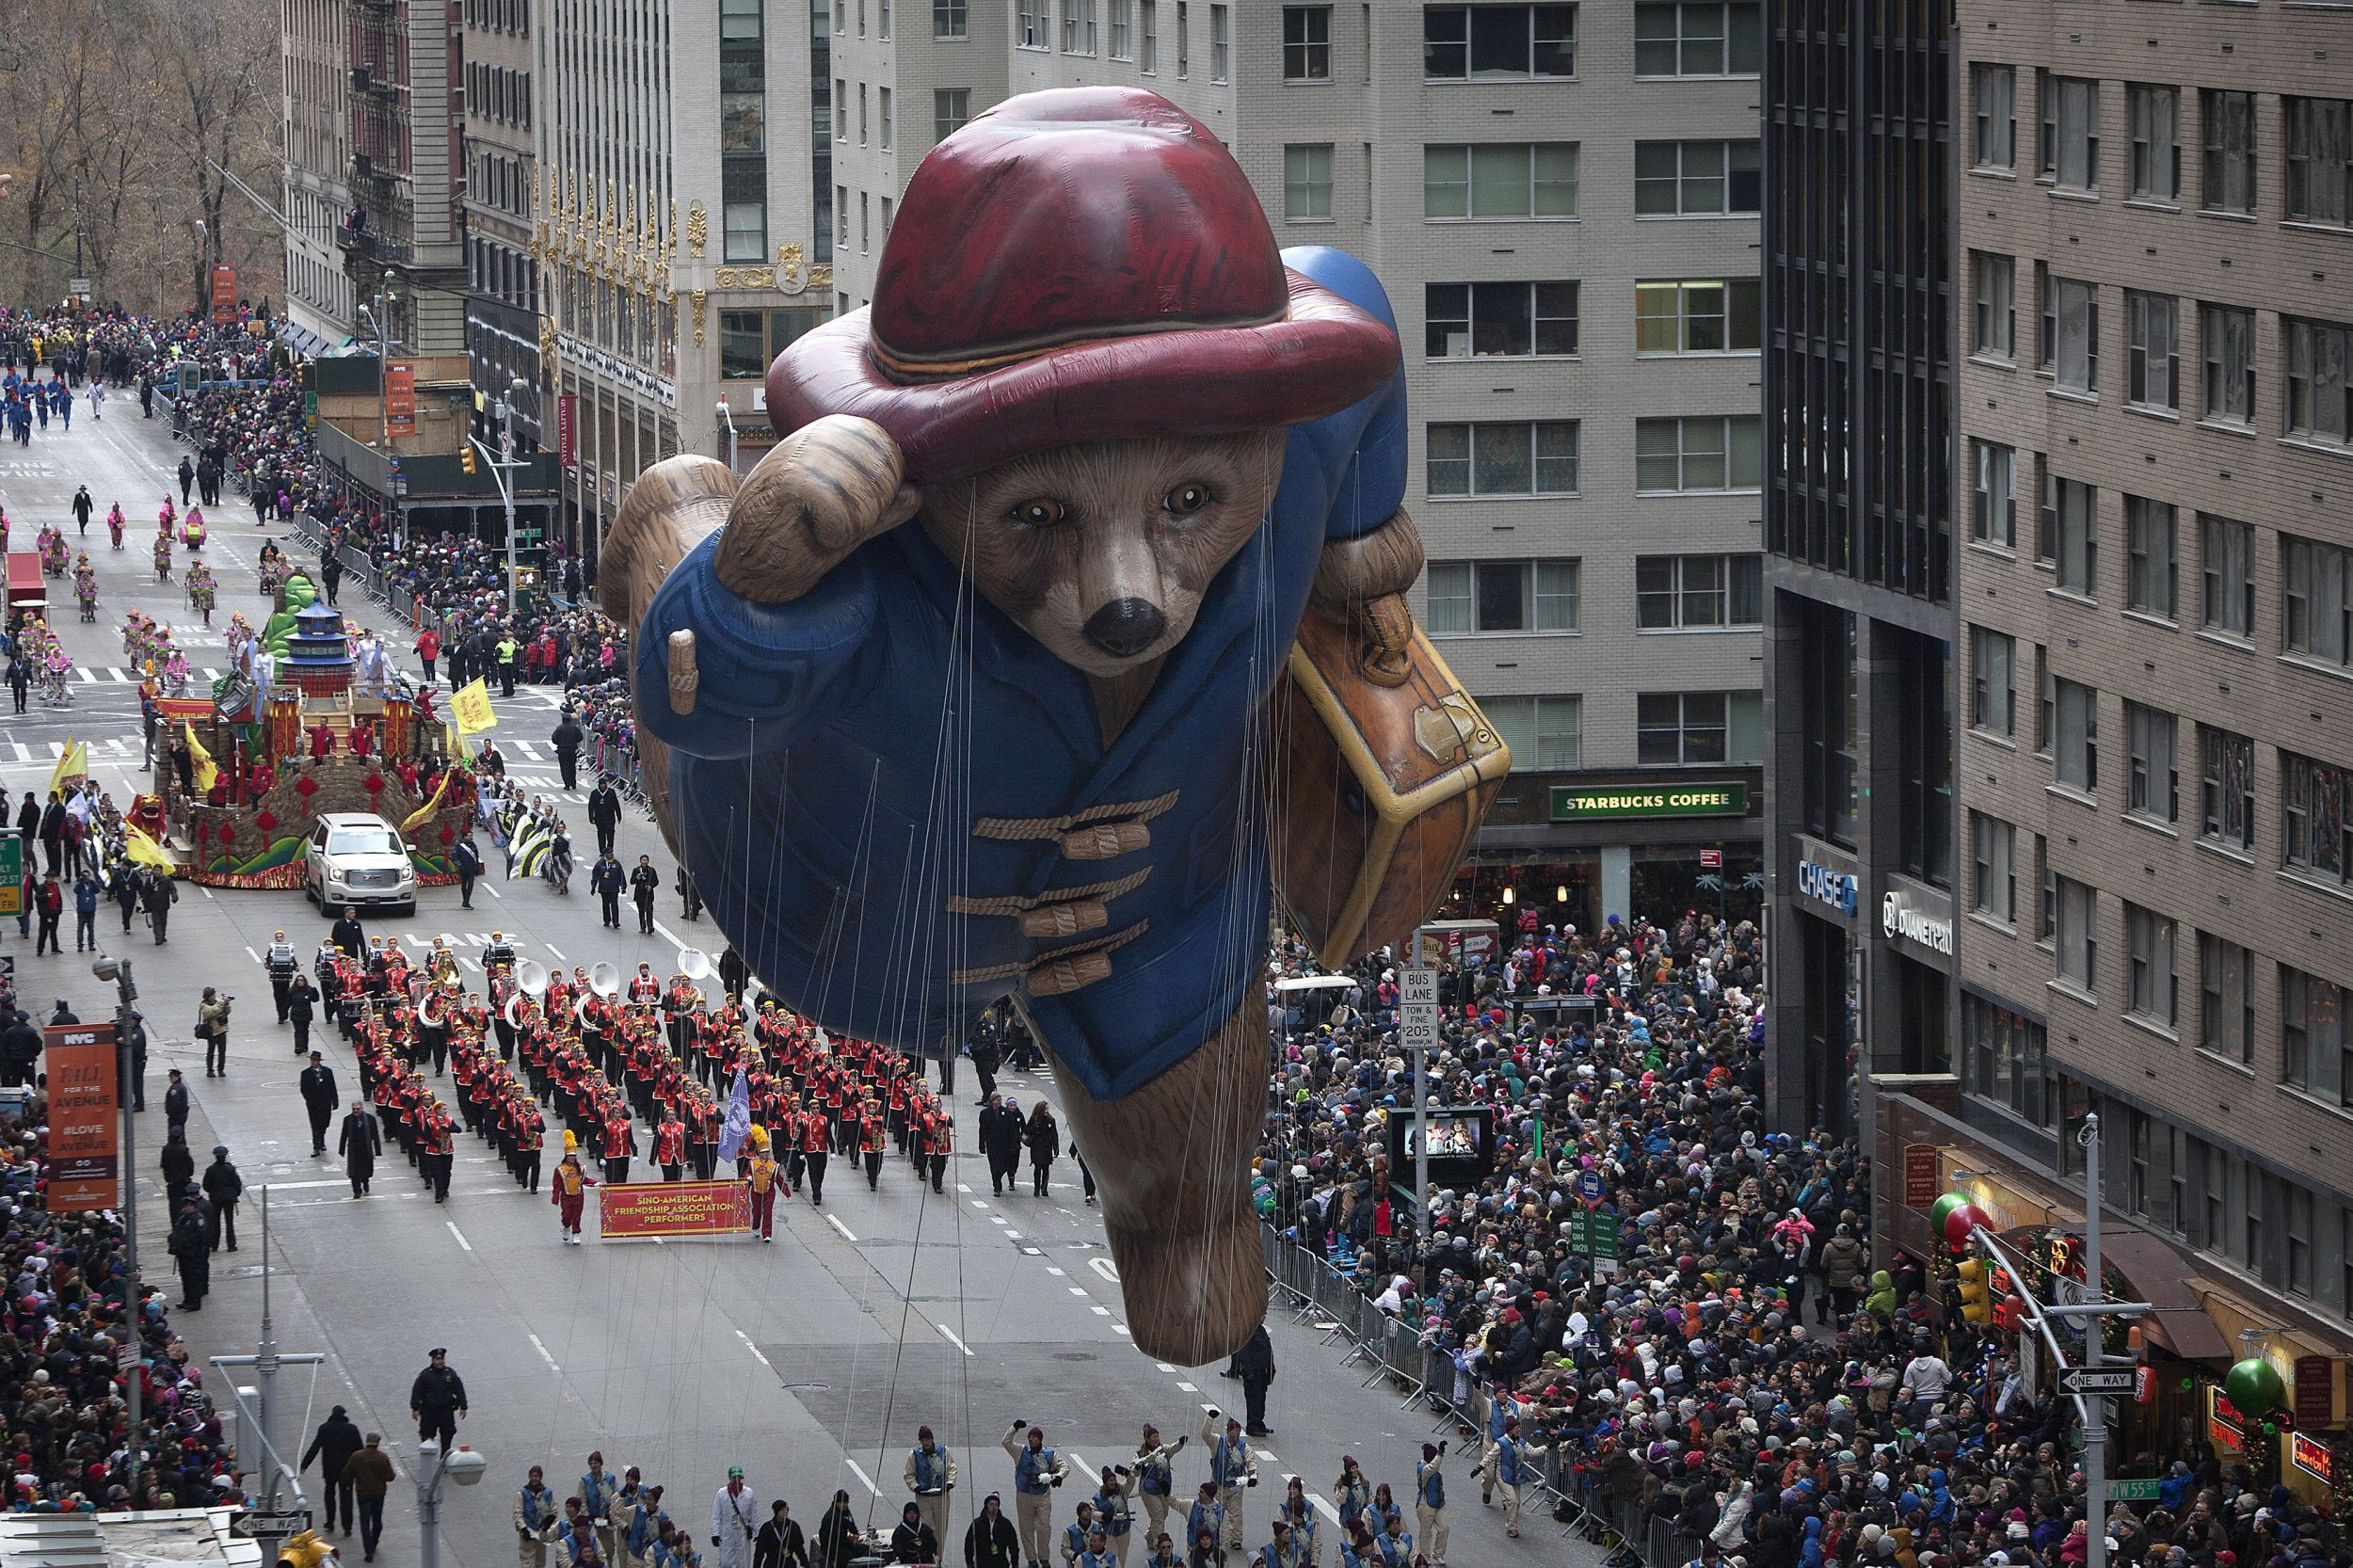 How to Watch (or Avoid) the Macy's Thanksgiving Day Parade